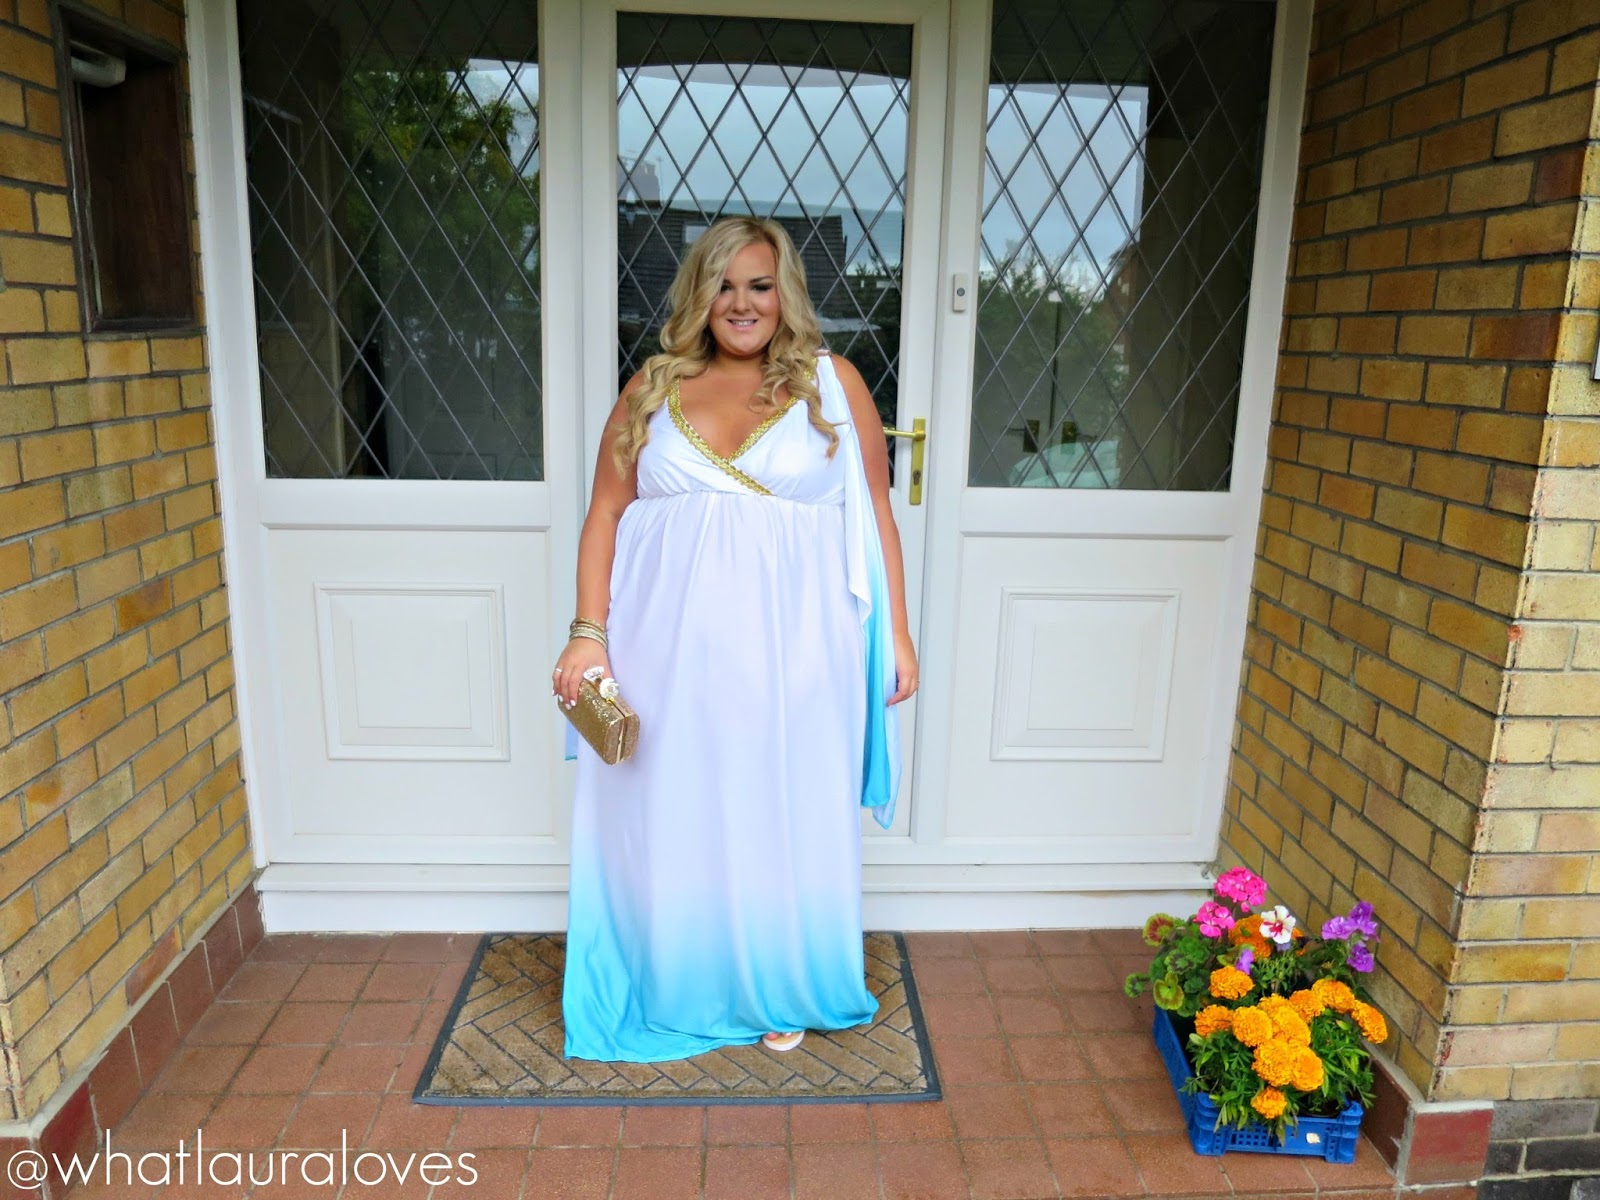 Whatlaurawore Greek Goddess Plus Size Fancy Dress What Laura Loves